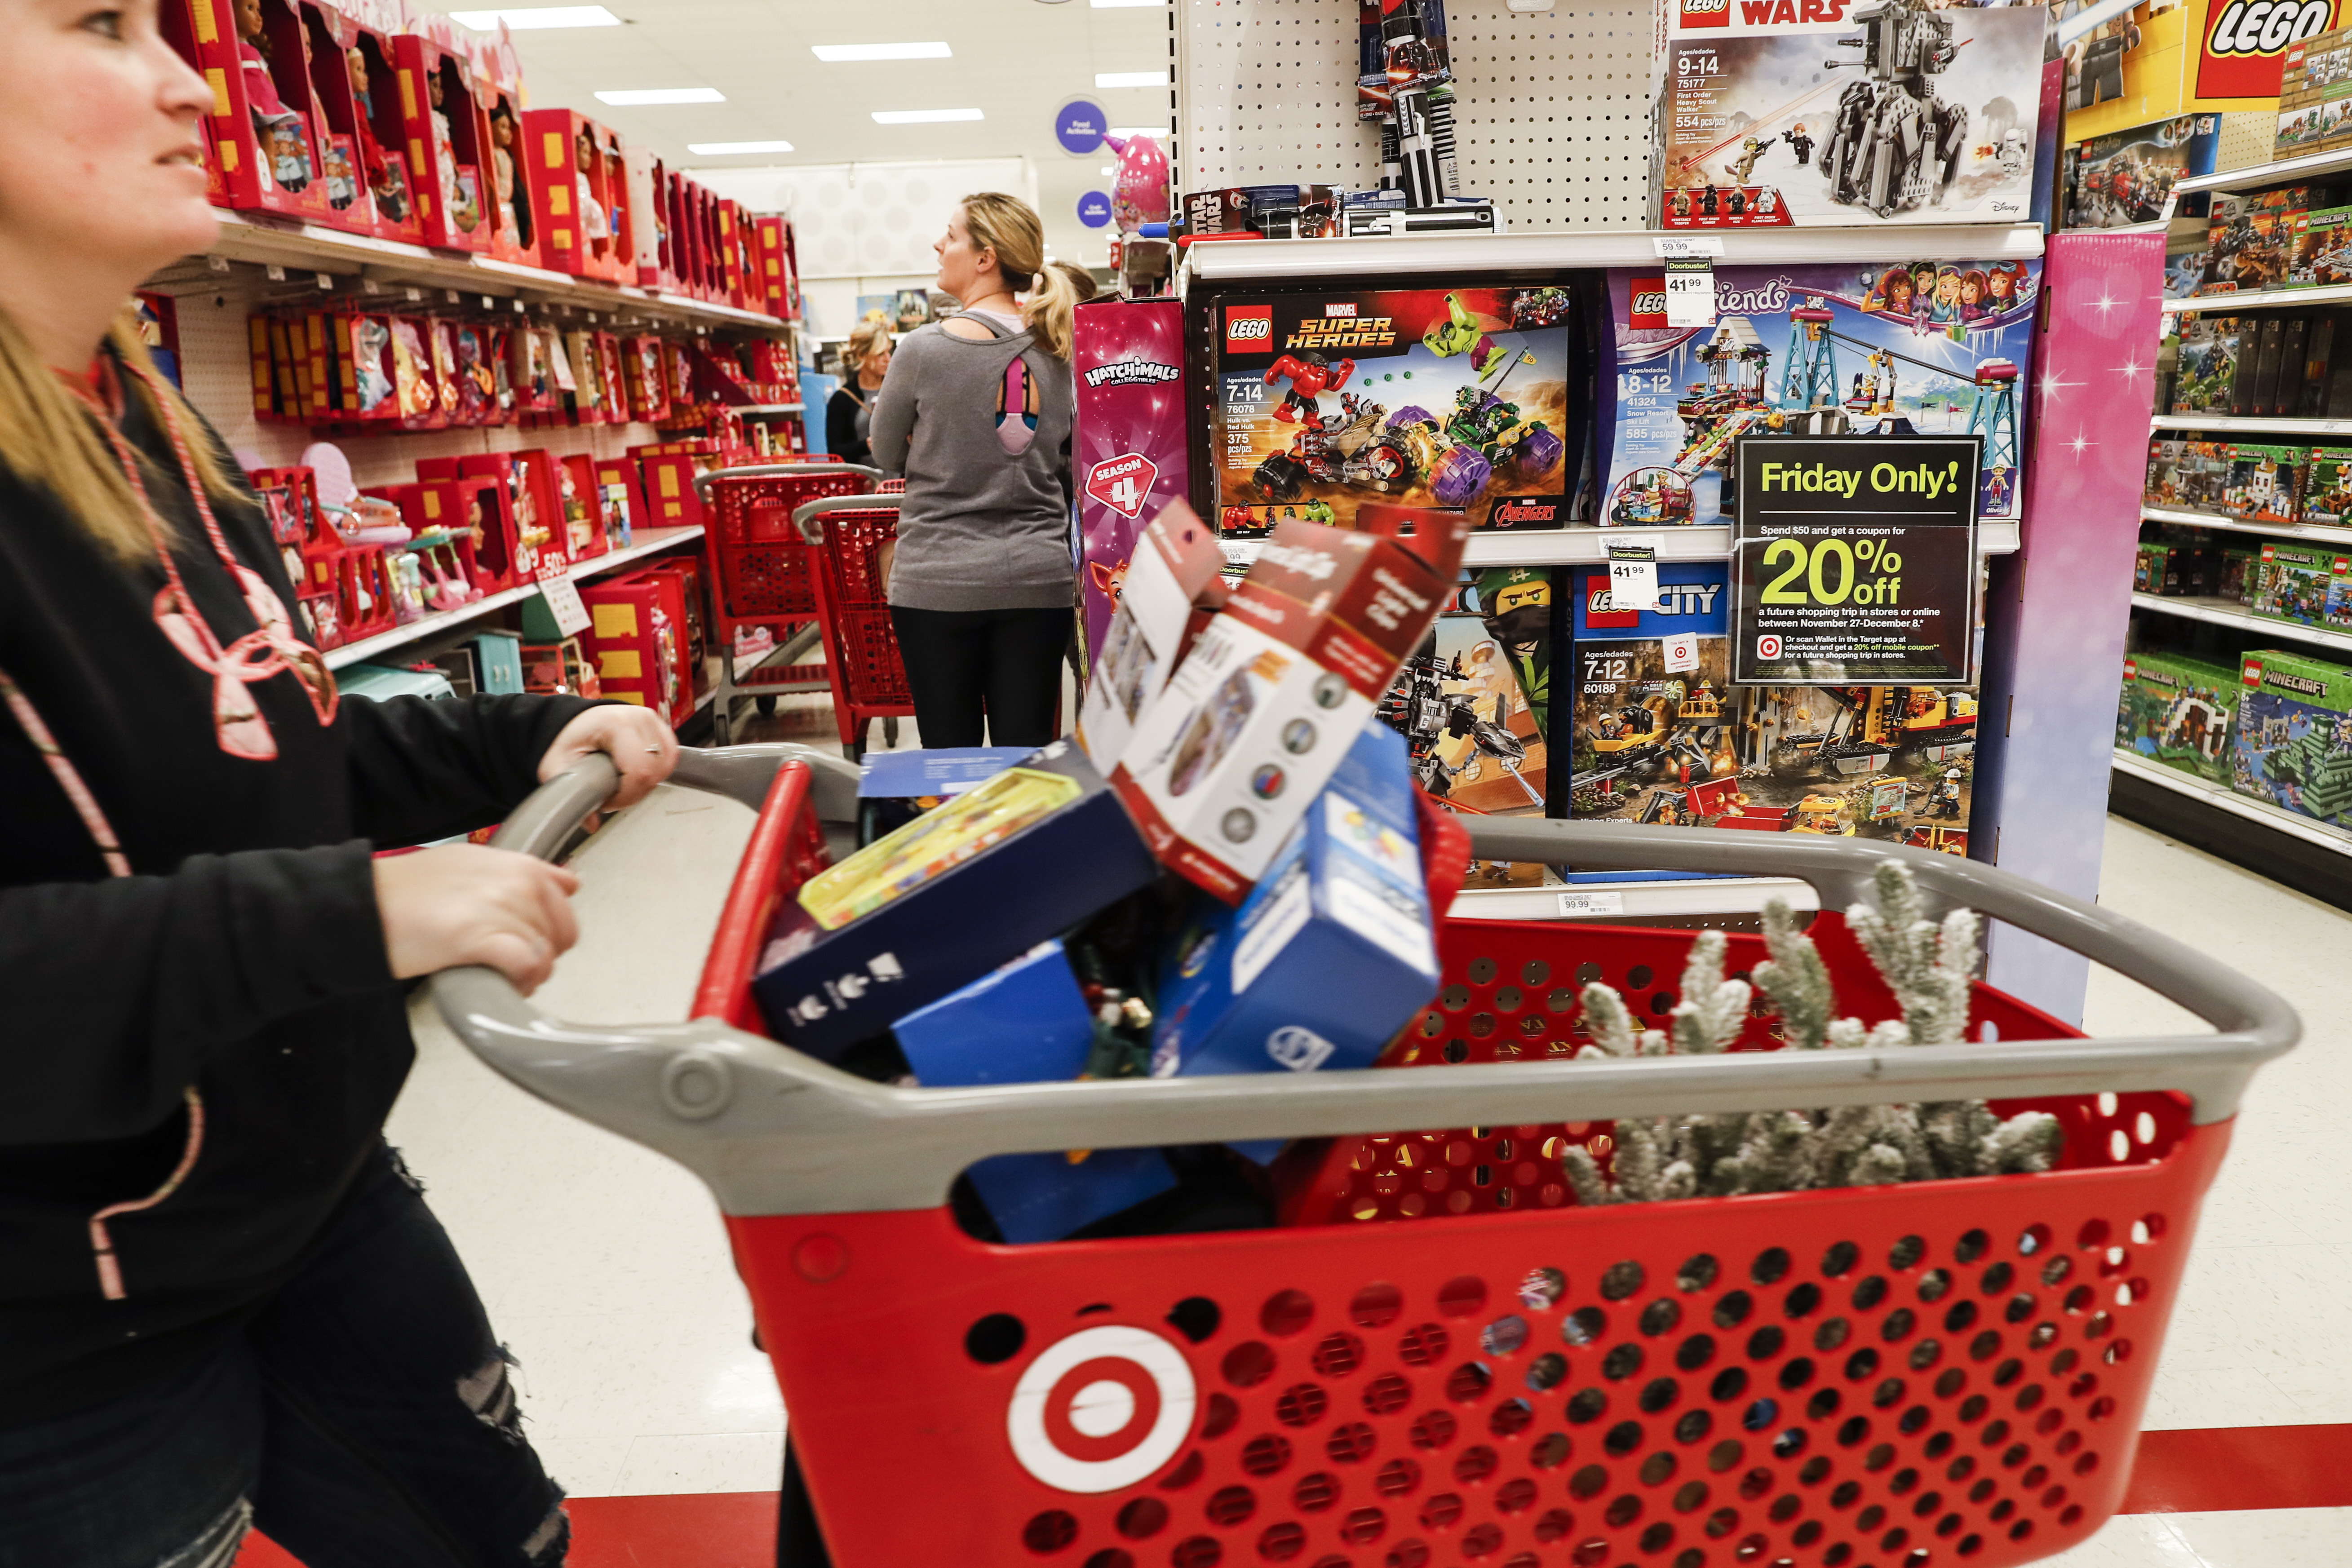 Shoppers browse the aisles during a Black Friday sale at a Target store, Nov. 23, 2018, in Newport, Ky.